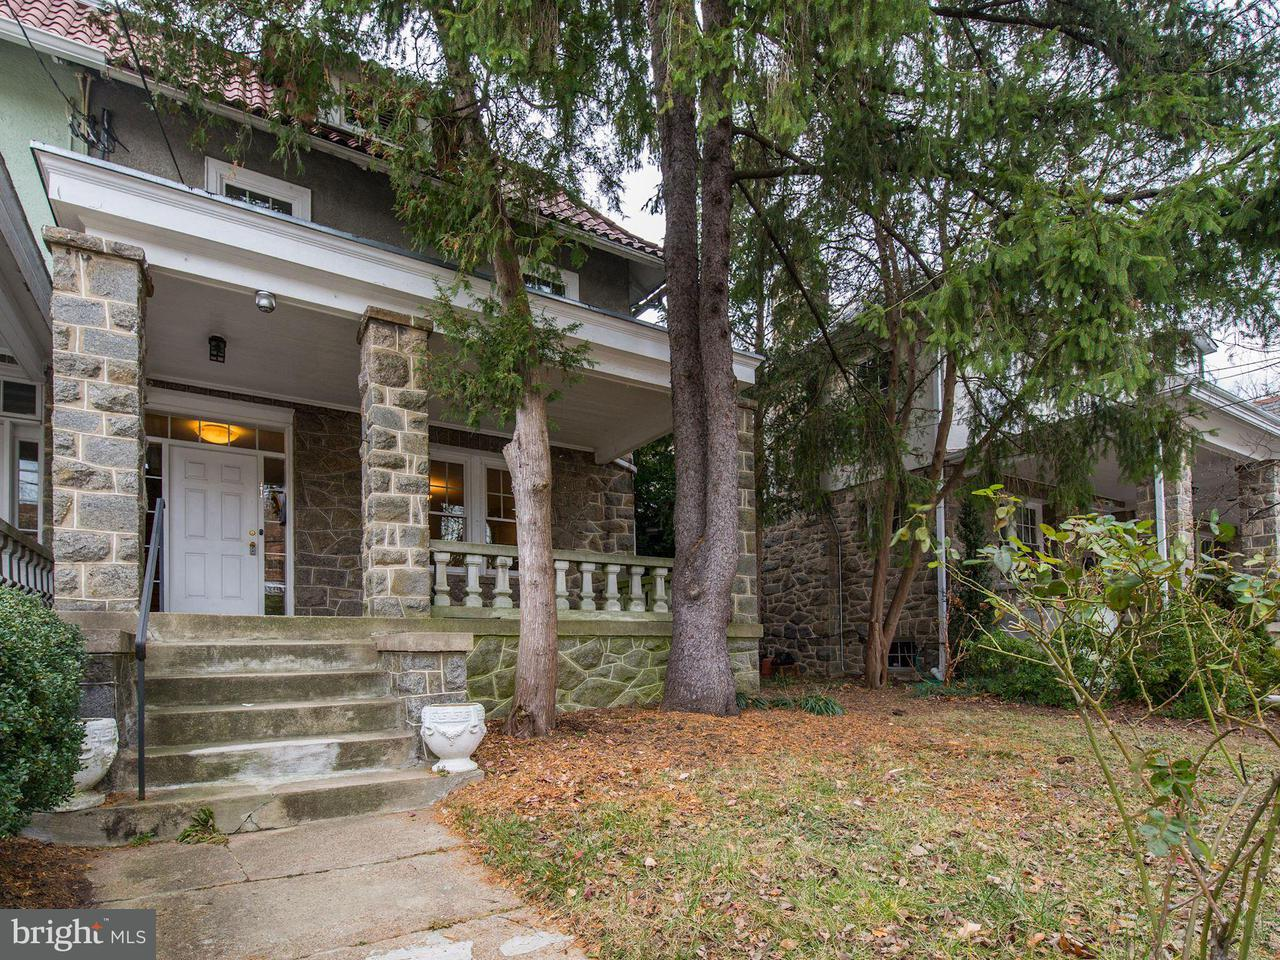 Townhouse for Sale at 3018 Rodman St Nw 3018 Rodman St Nw Washington, District Of Columbia 20008 United States